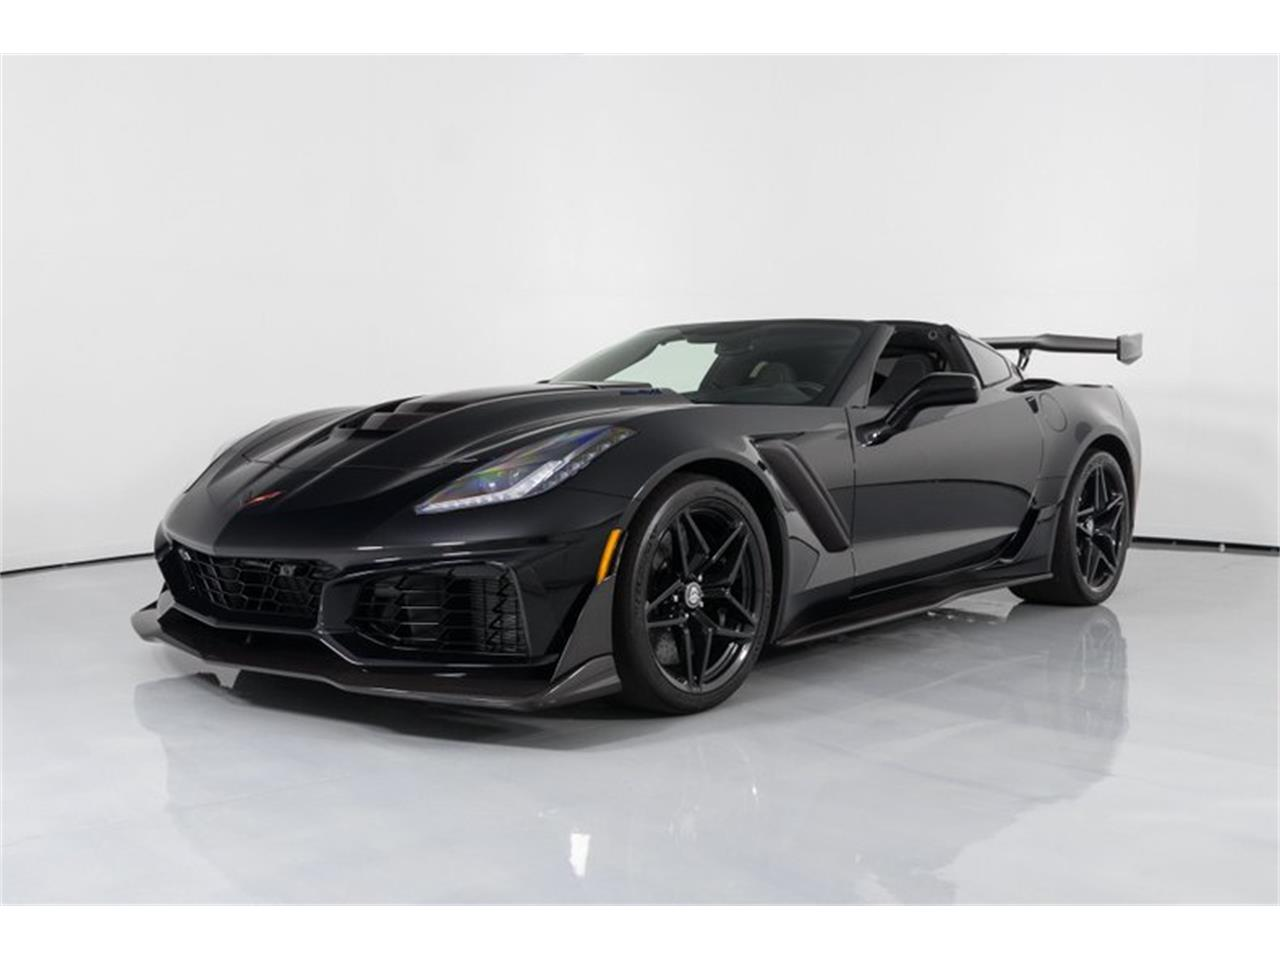 2019 Chevrolet Corvette ZR1 for sale in St. Charles, MO – photo 3